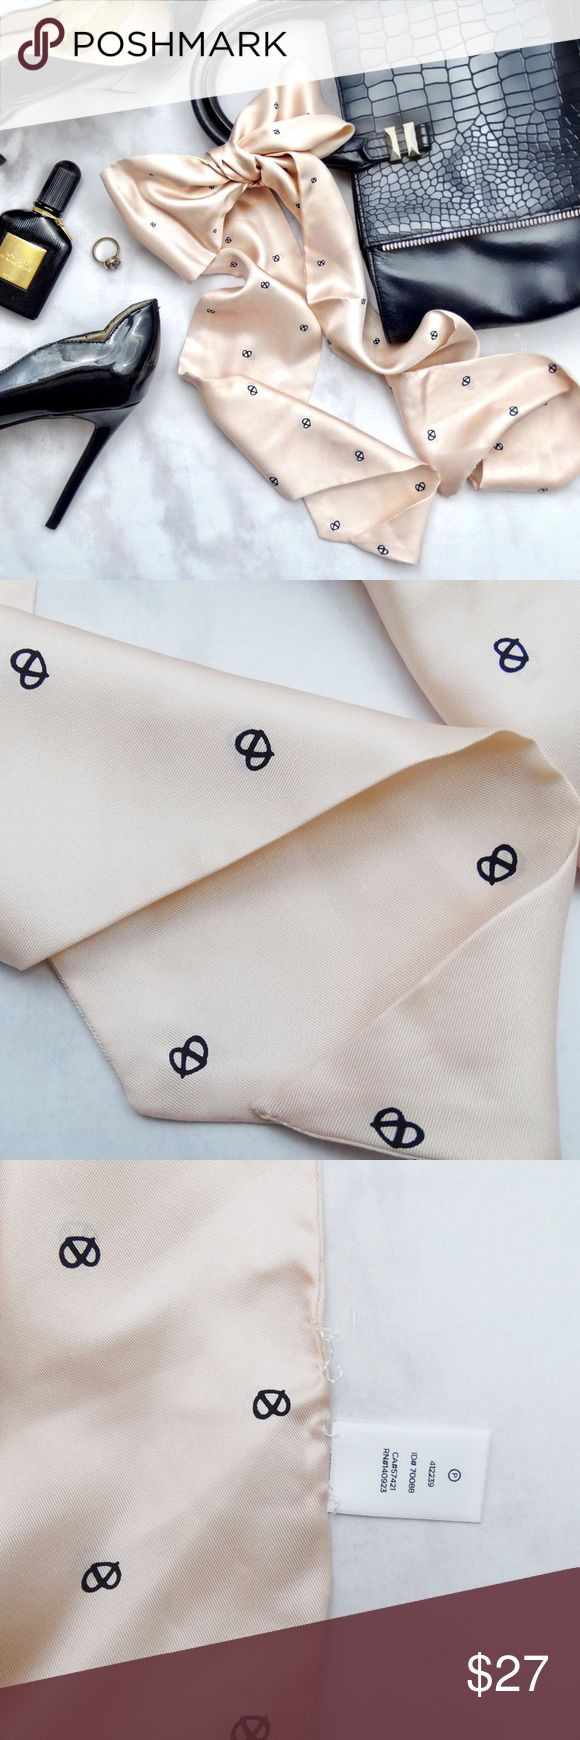 Blush Pretzel Print Silk Scarf Details: * Blush/pale pink with tiny pretzel print * Skinny, long style that can be worn as scarf, headband, bag accessory, etc  * 100% silk * NWOT - has fabric tag attached, brand tag/price tag came off (see photo 4, loose threads where tag came off) 03231706 LOFT Accessories Scarves & Wraps